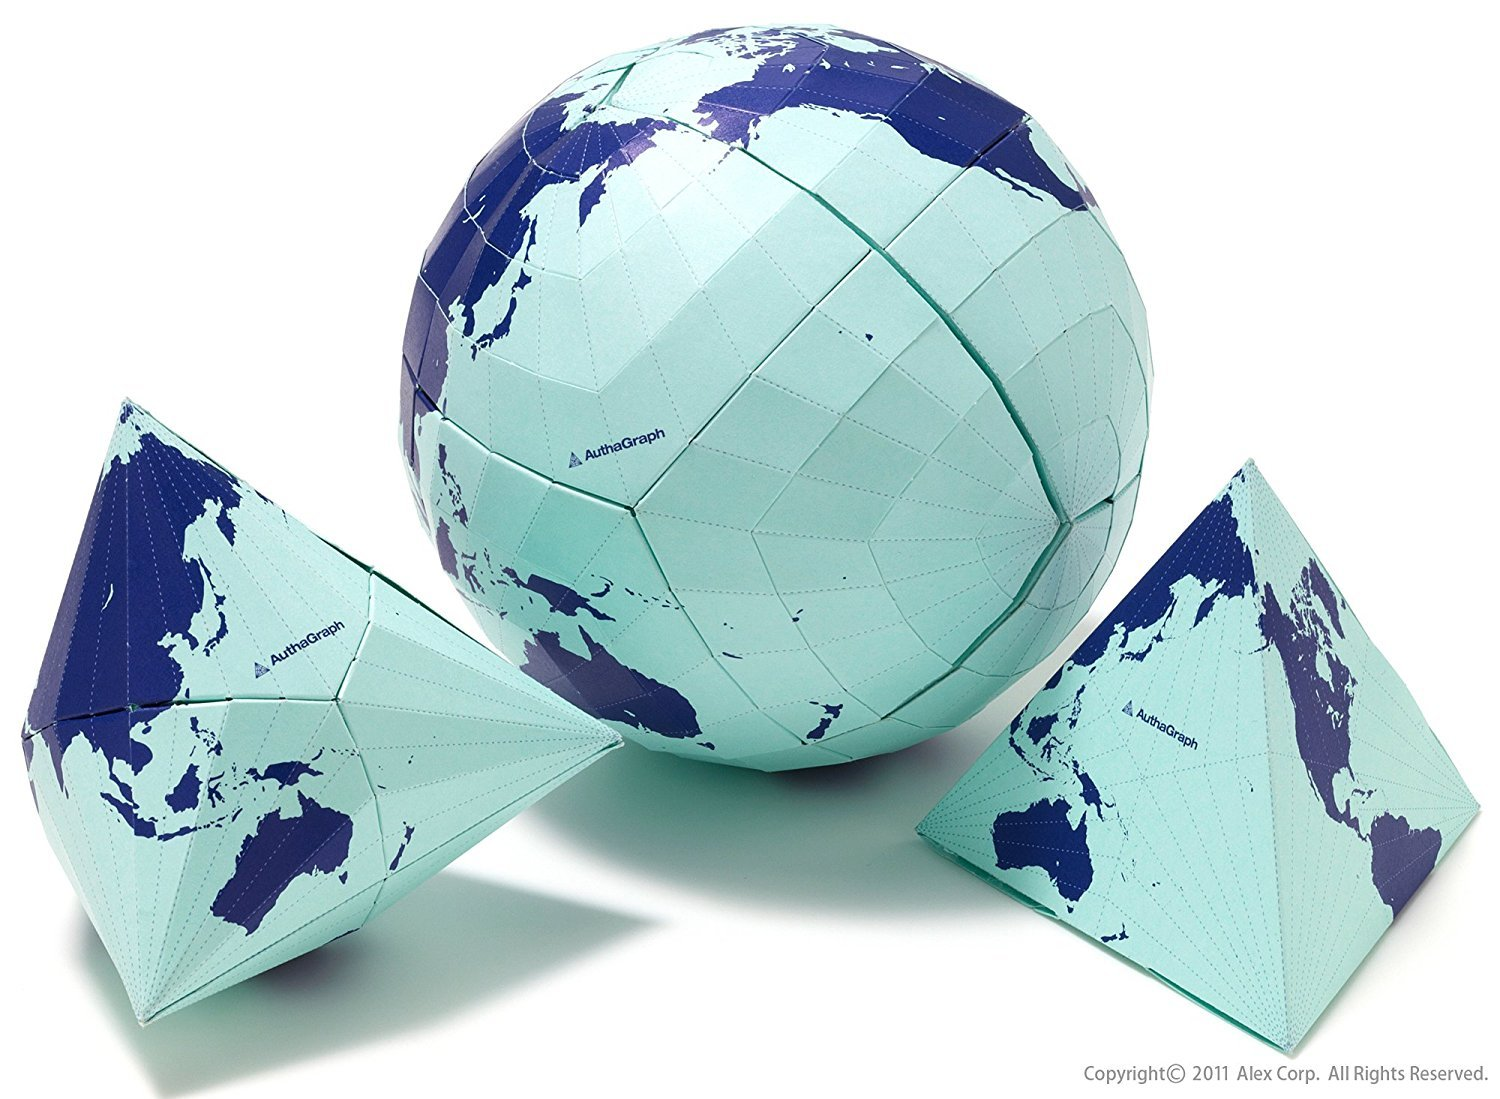 AuthaGraph Globe - The World's Most Accurate Globe. This AuthaGraph Globe is a paper craft globe kit showing the process making a 2D AuthaGraph world map.